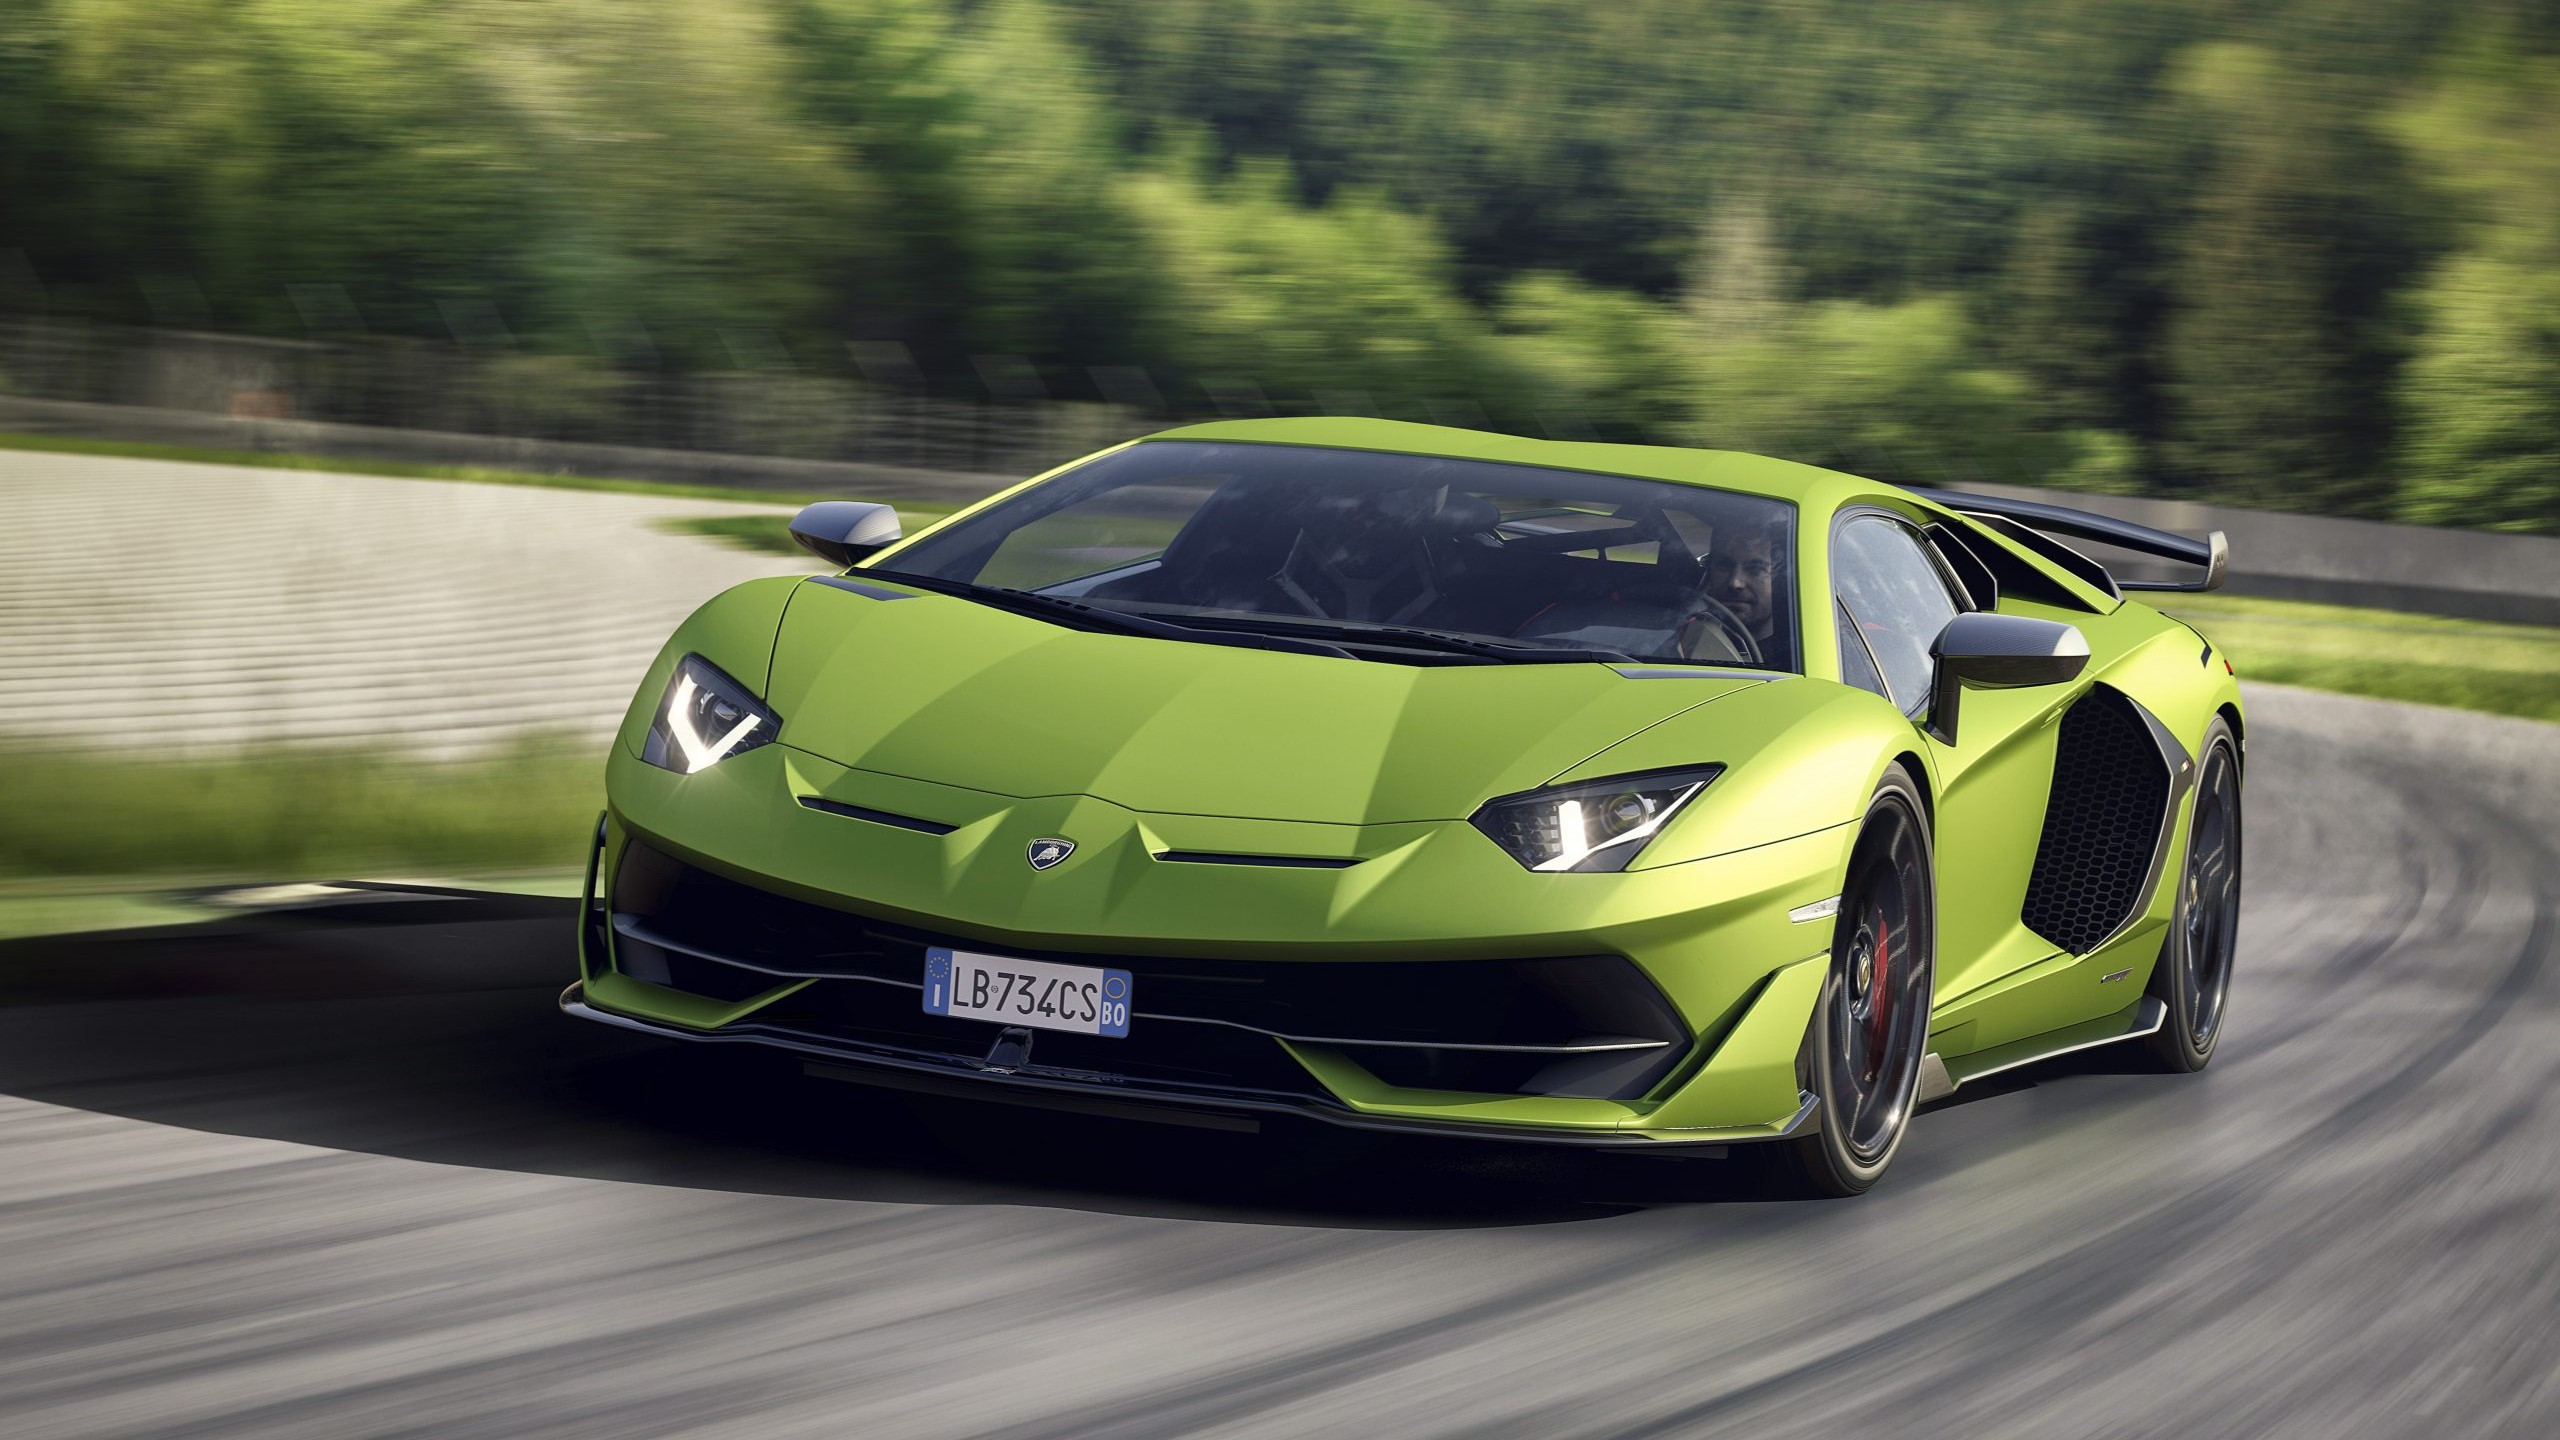 Wallpaper Lamborghini Aventador Svj 2019 Cars Supercar